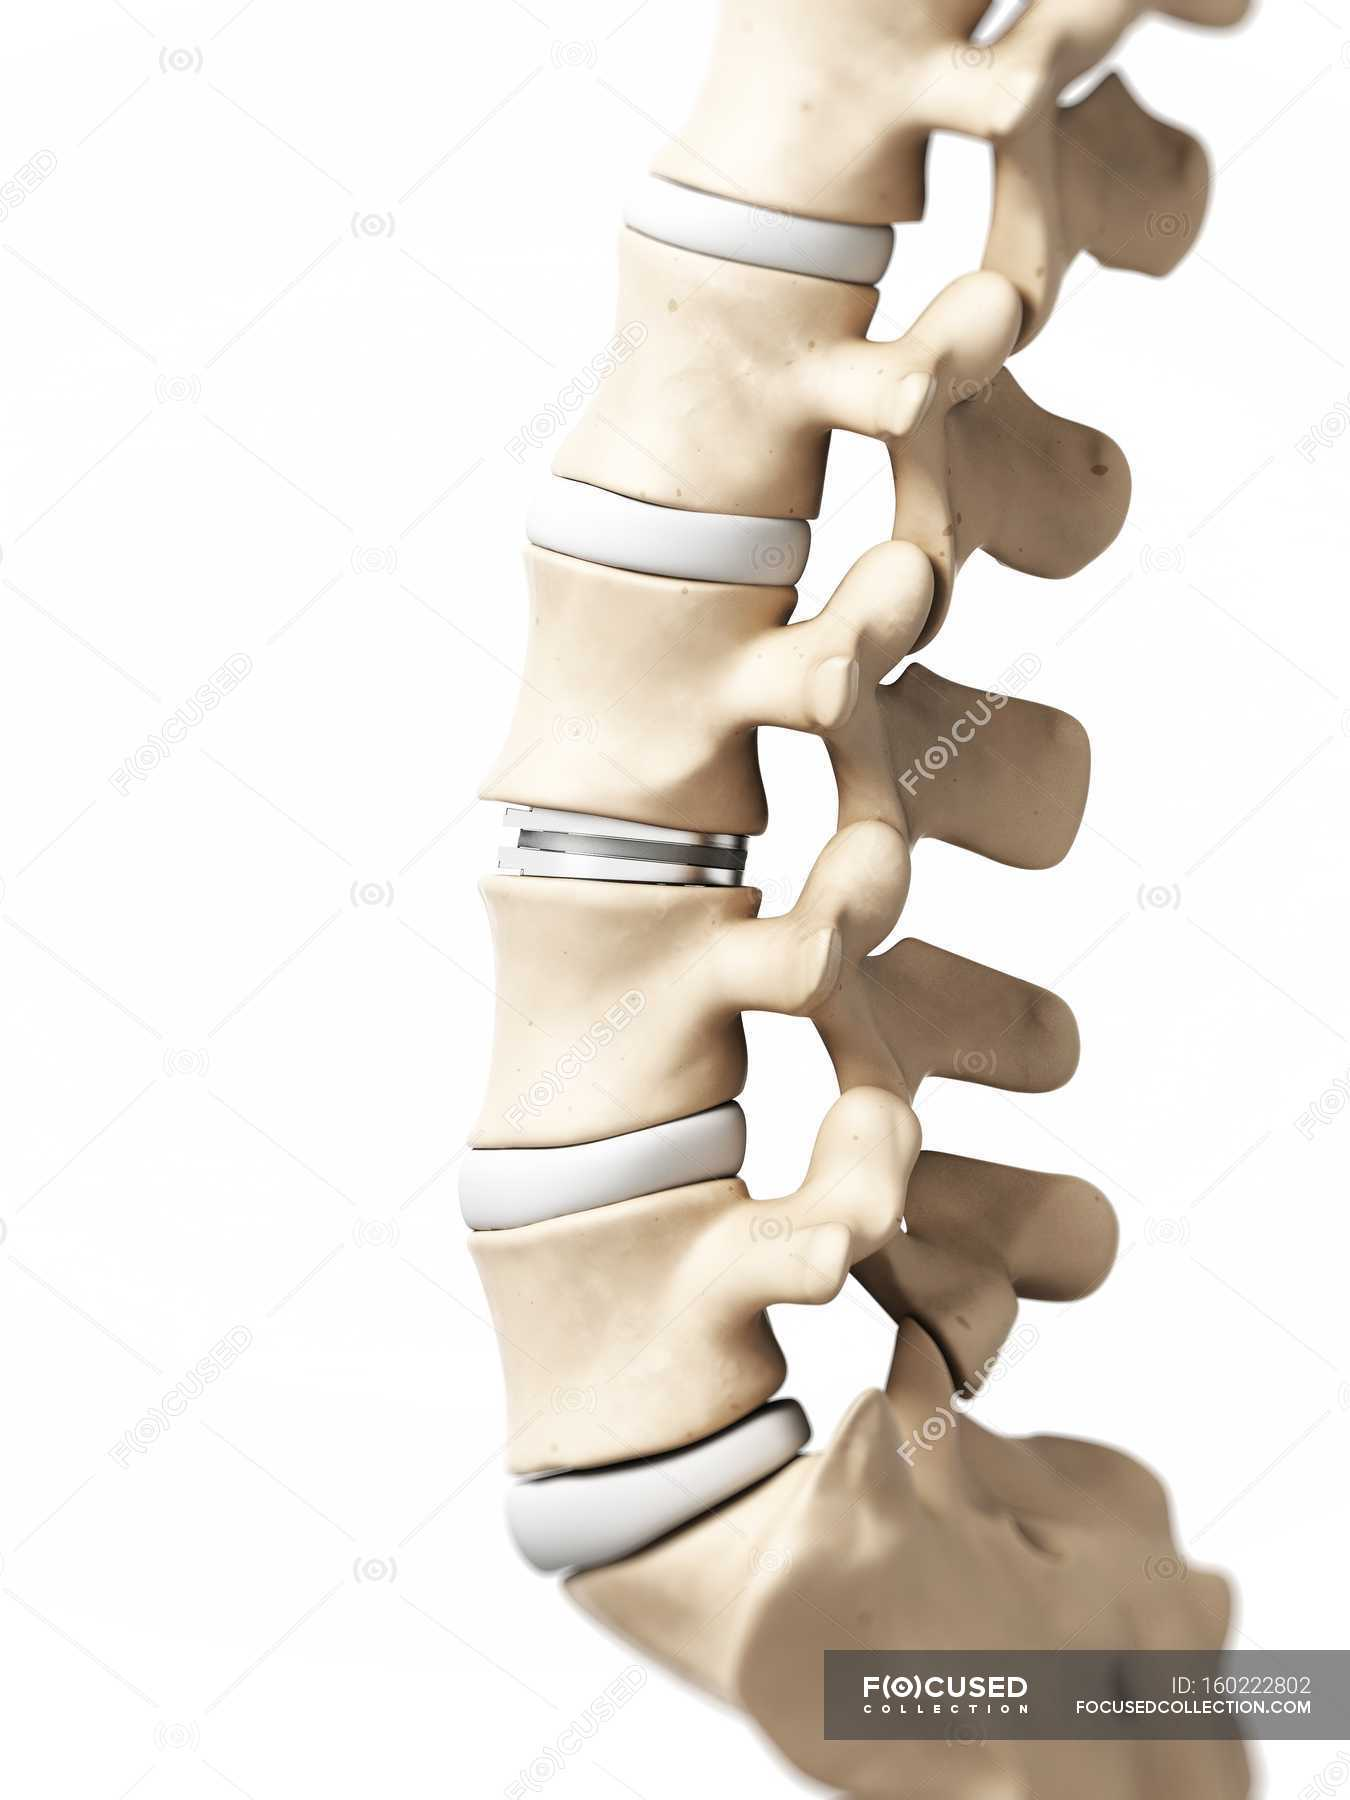 Lumbar spine anatomy — Stock Photo | #160222802